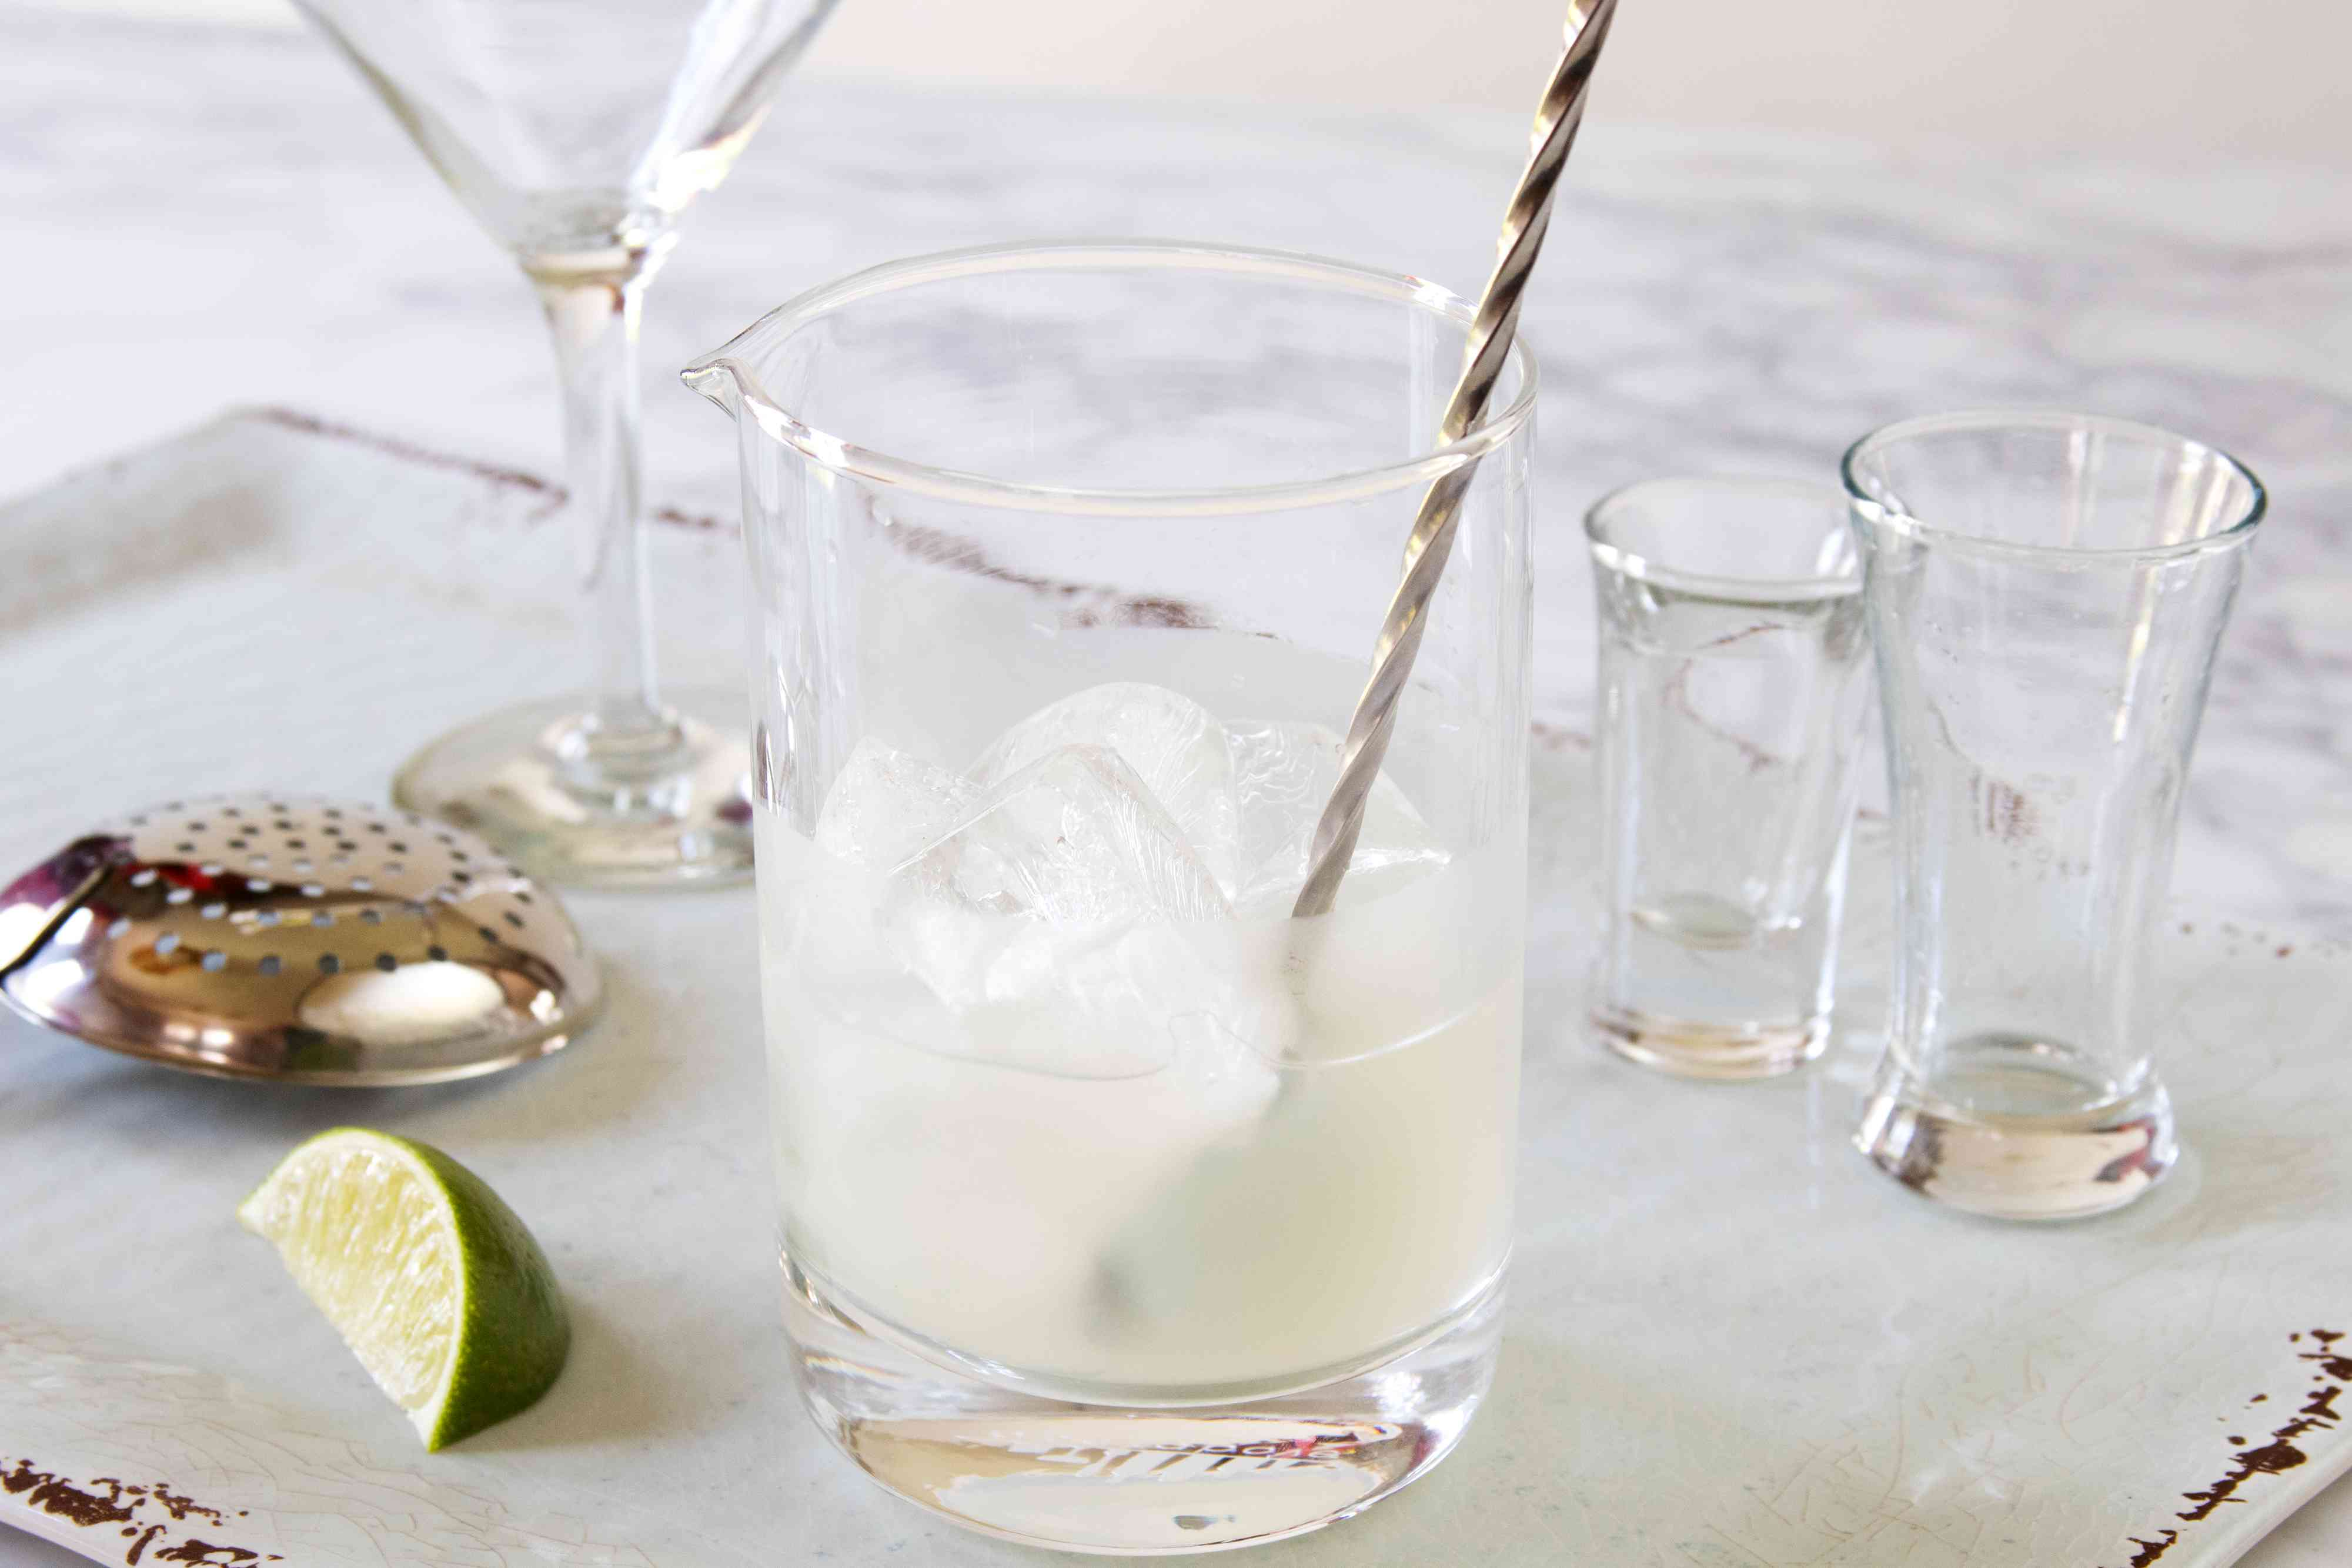 Mixing a classic gimlet cocktail